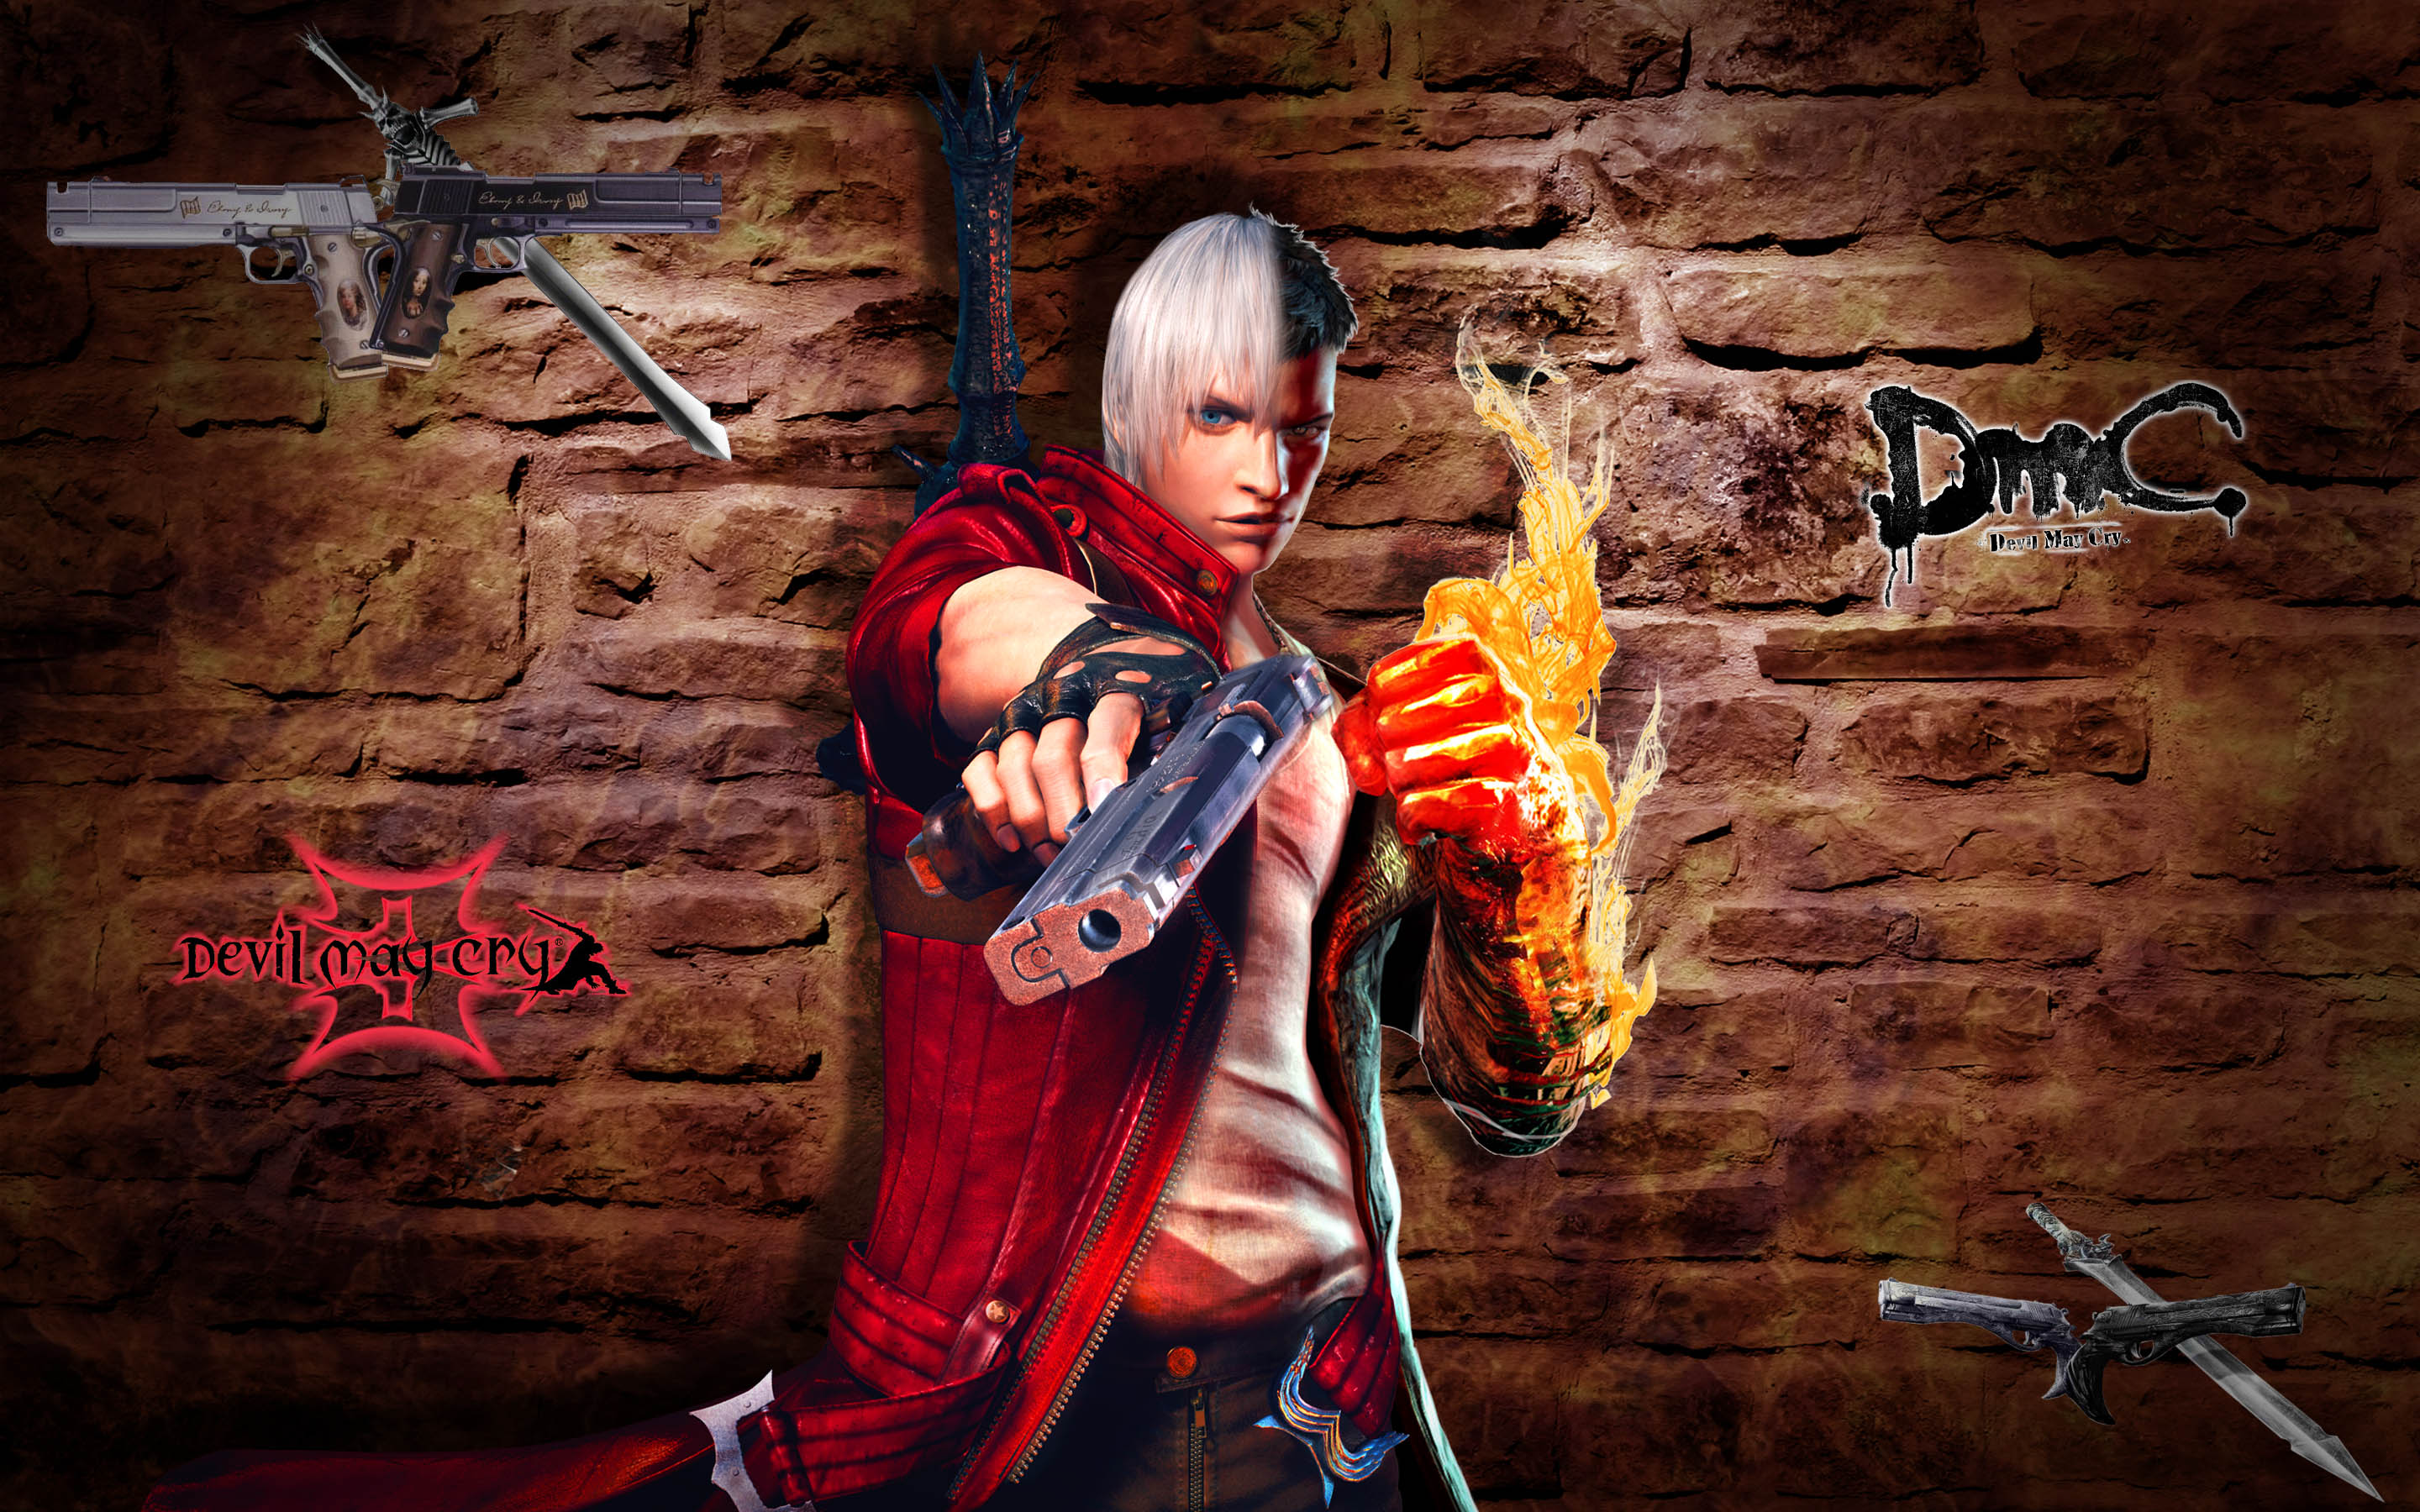 dante dmc 5 enter - photo #45